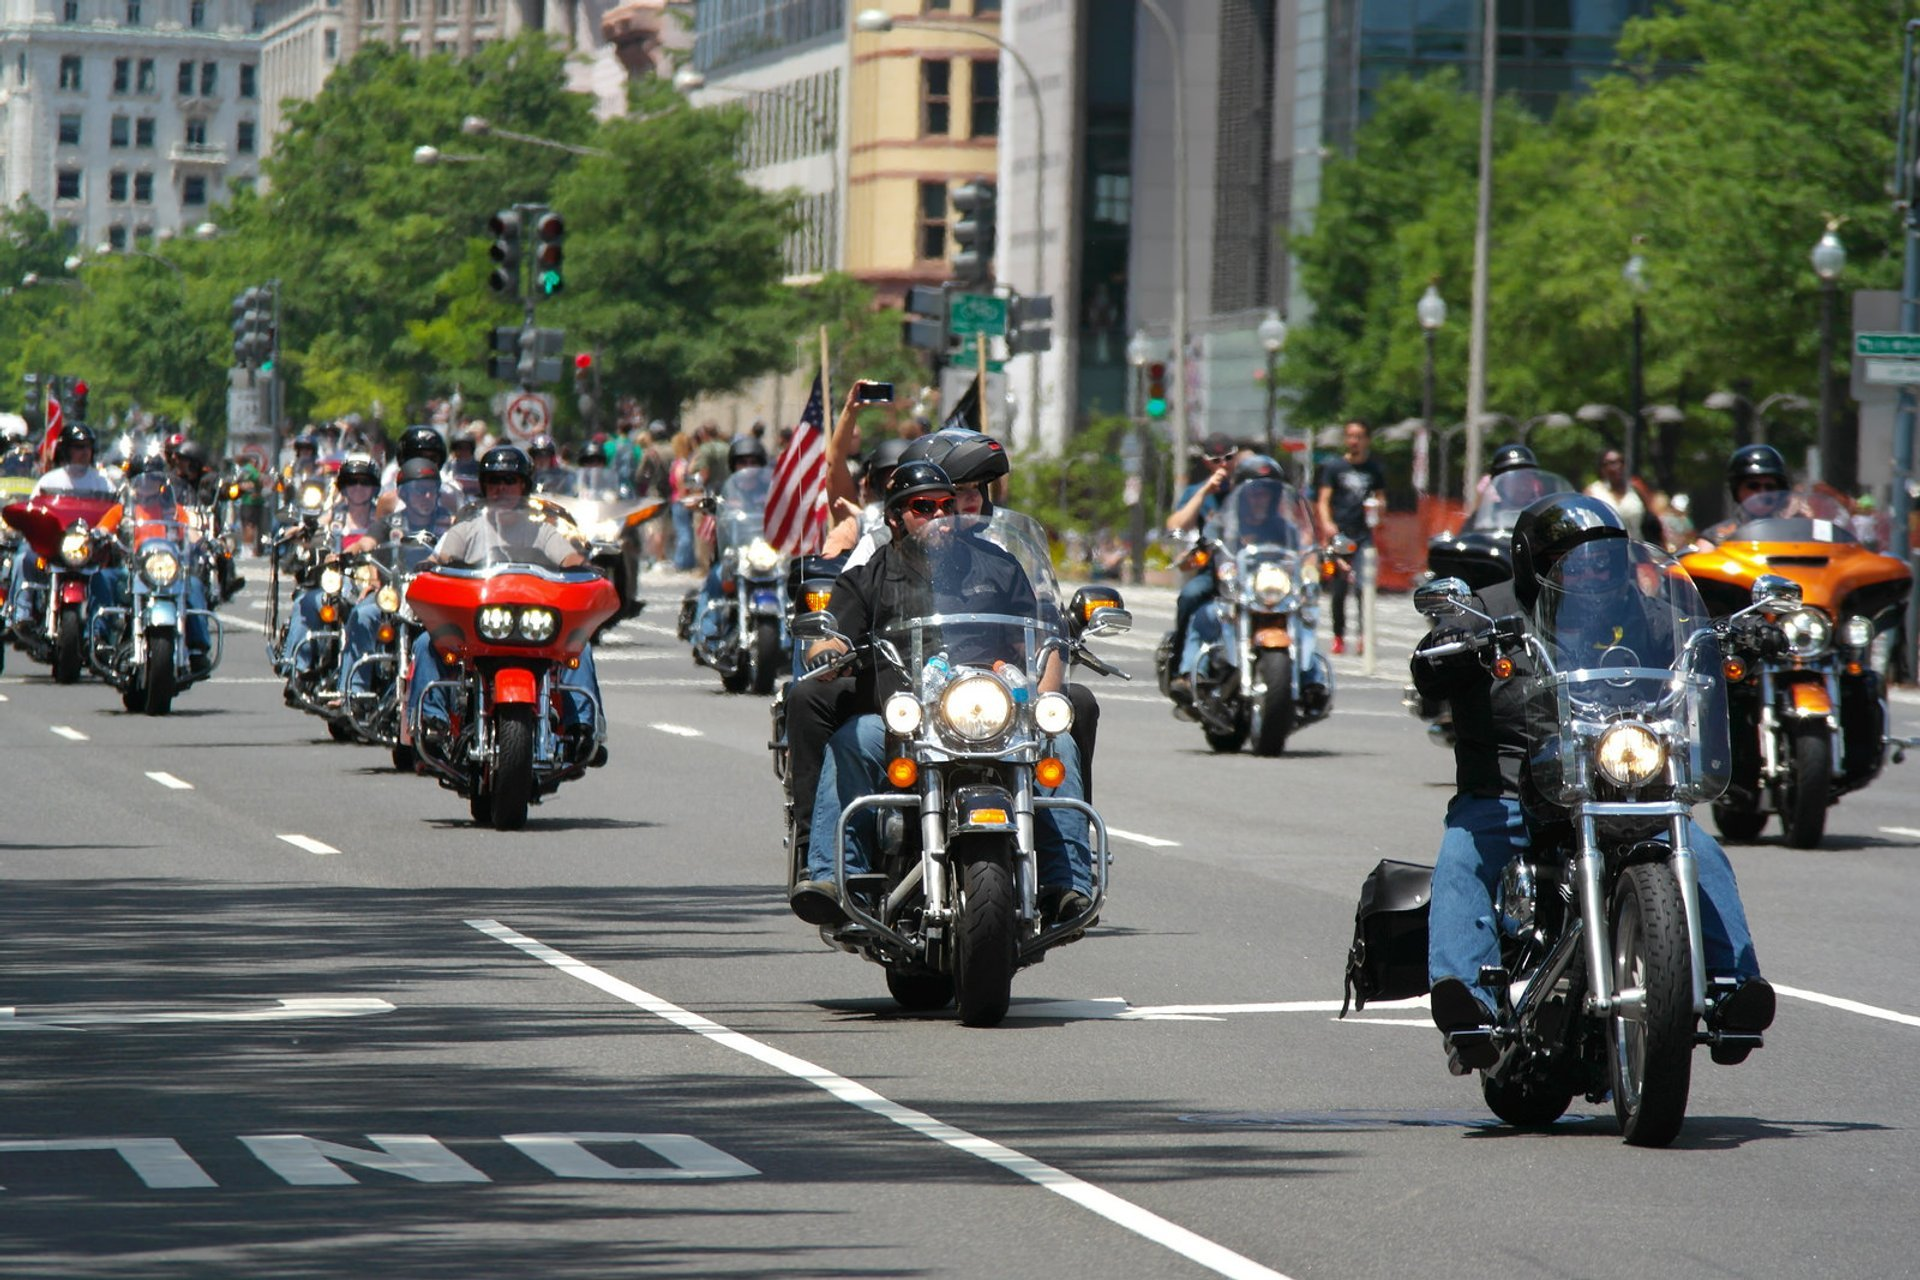 Rolling Thunder 'Ride for Freedom' in Washington, D.C. - Best Season 2020